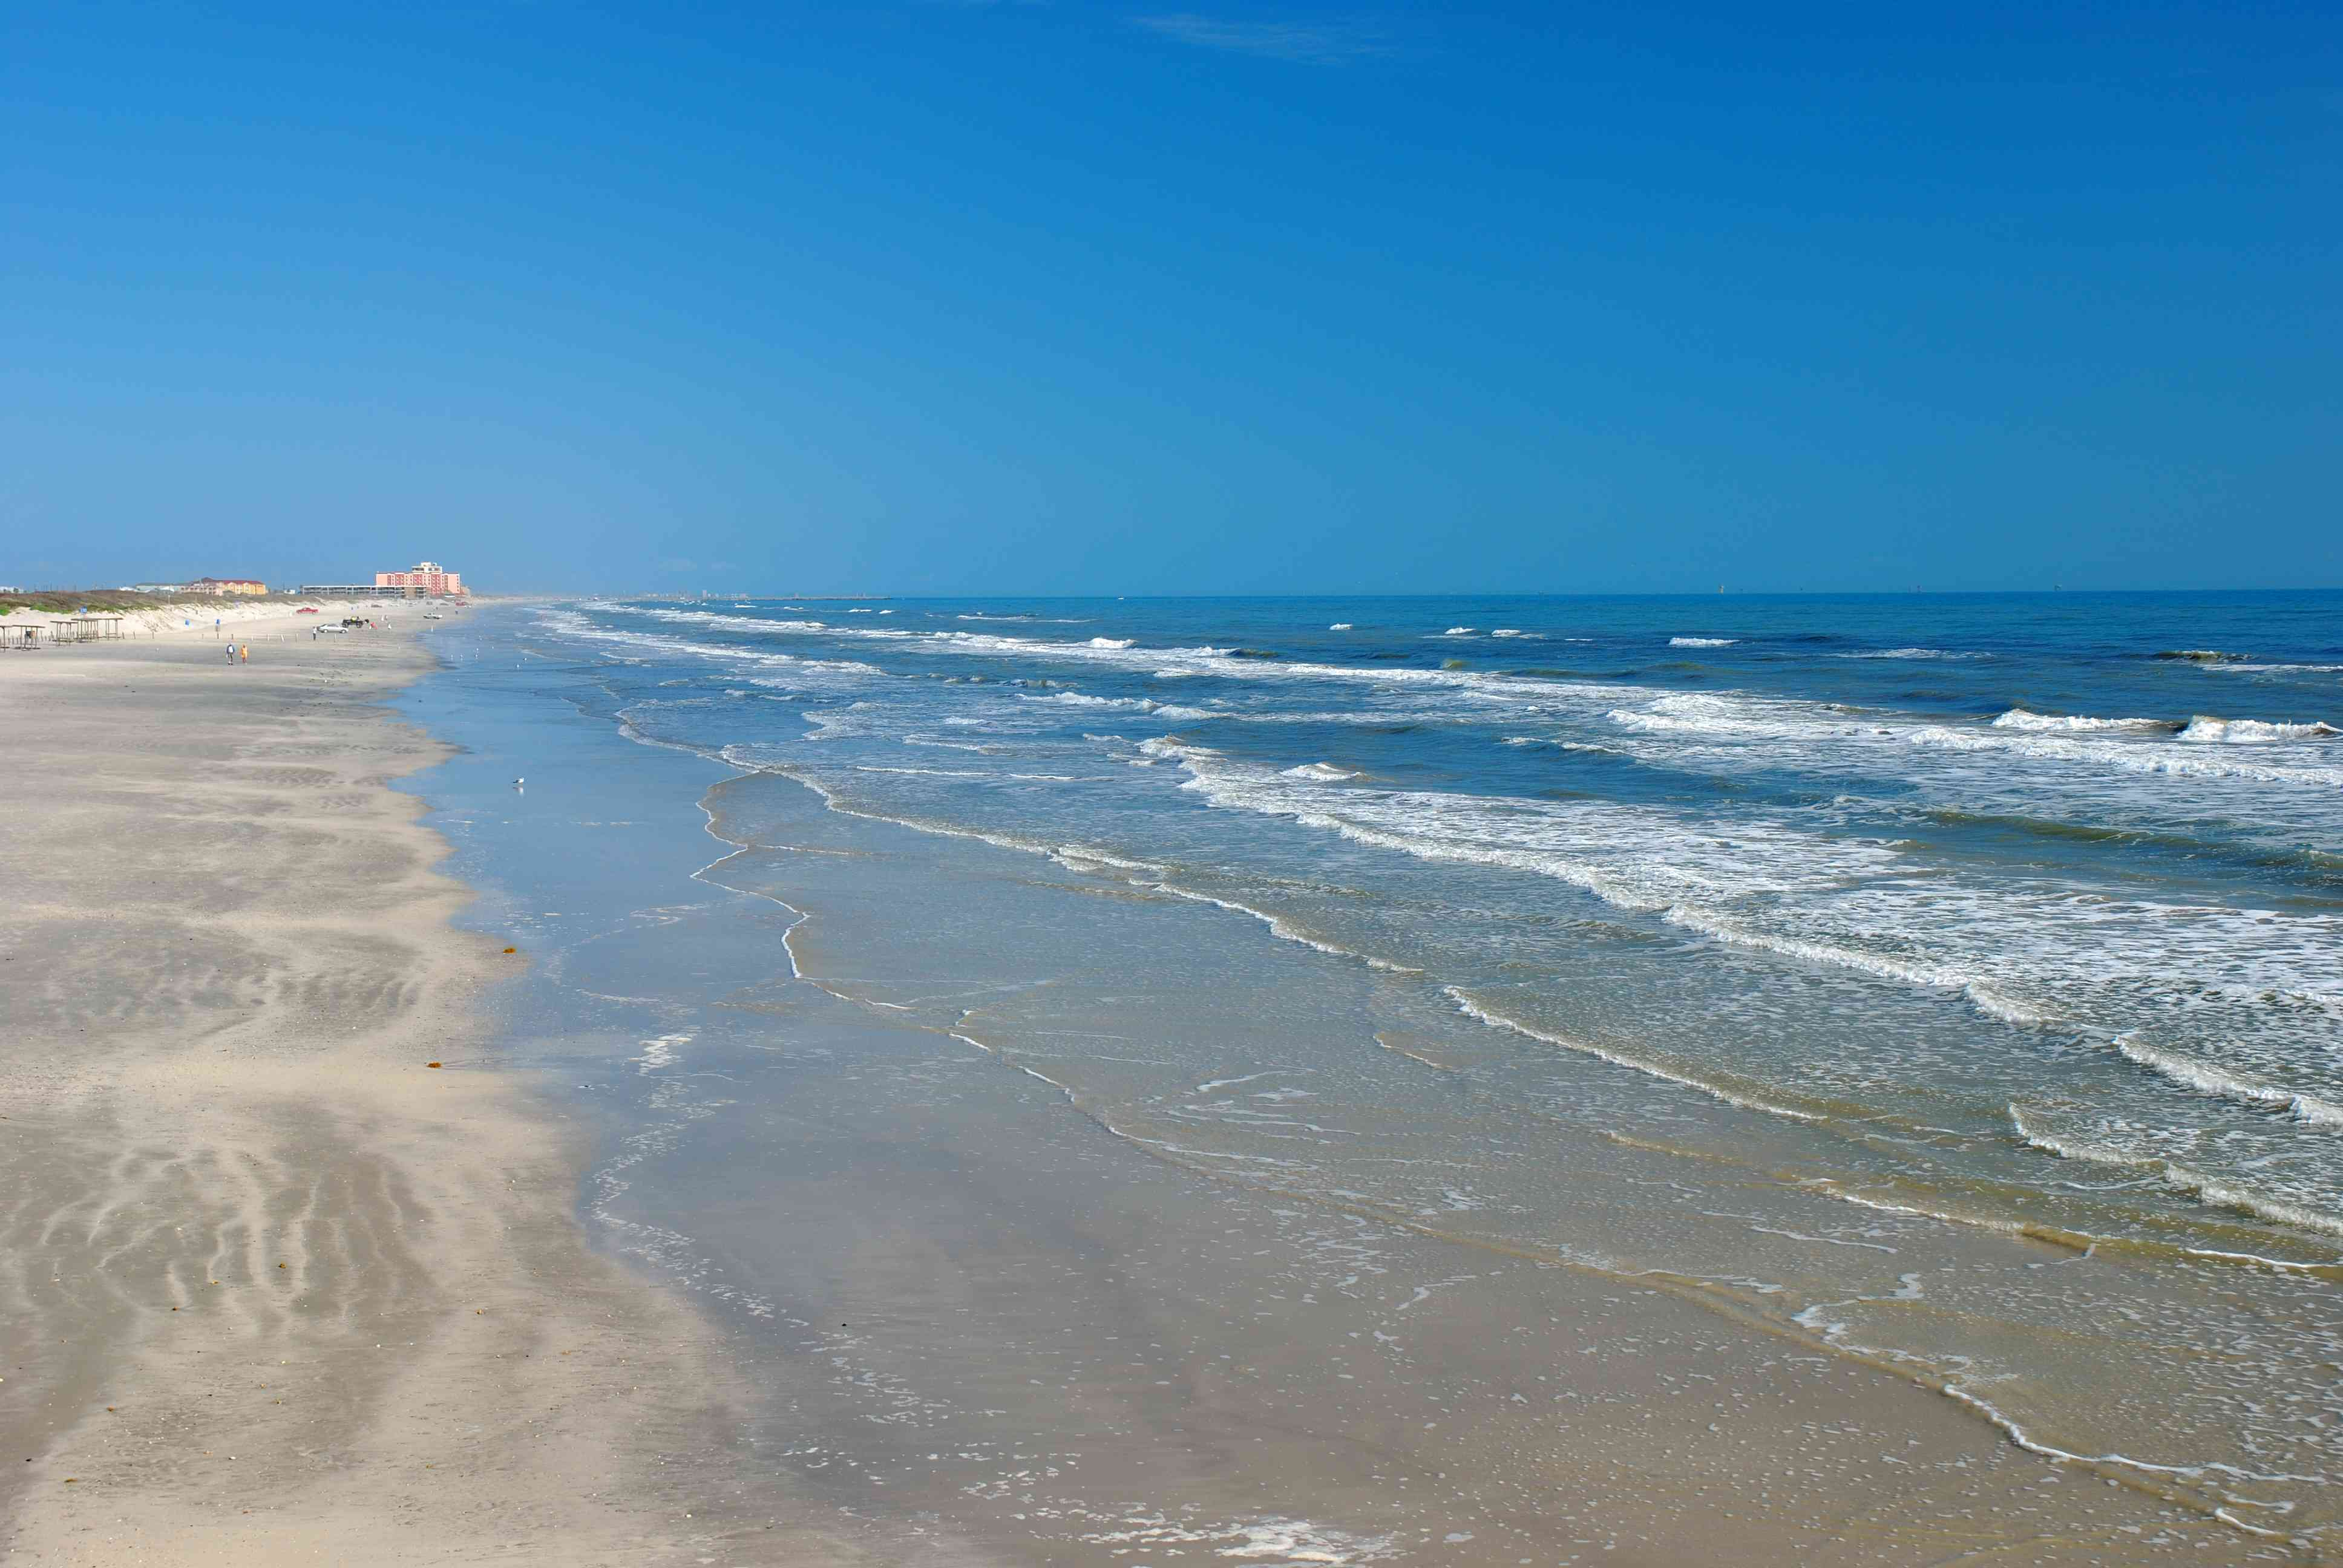 The water and sand at Padre Island.